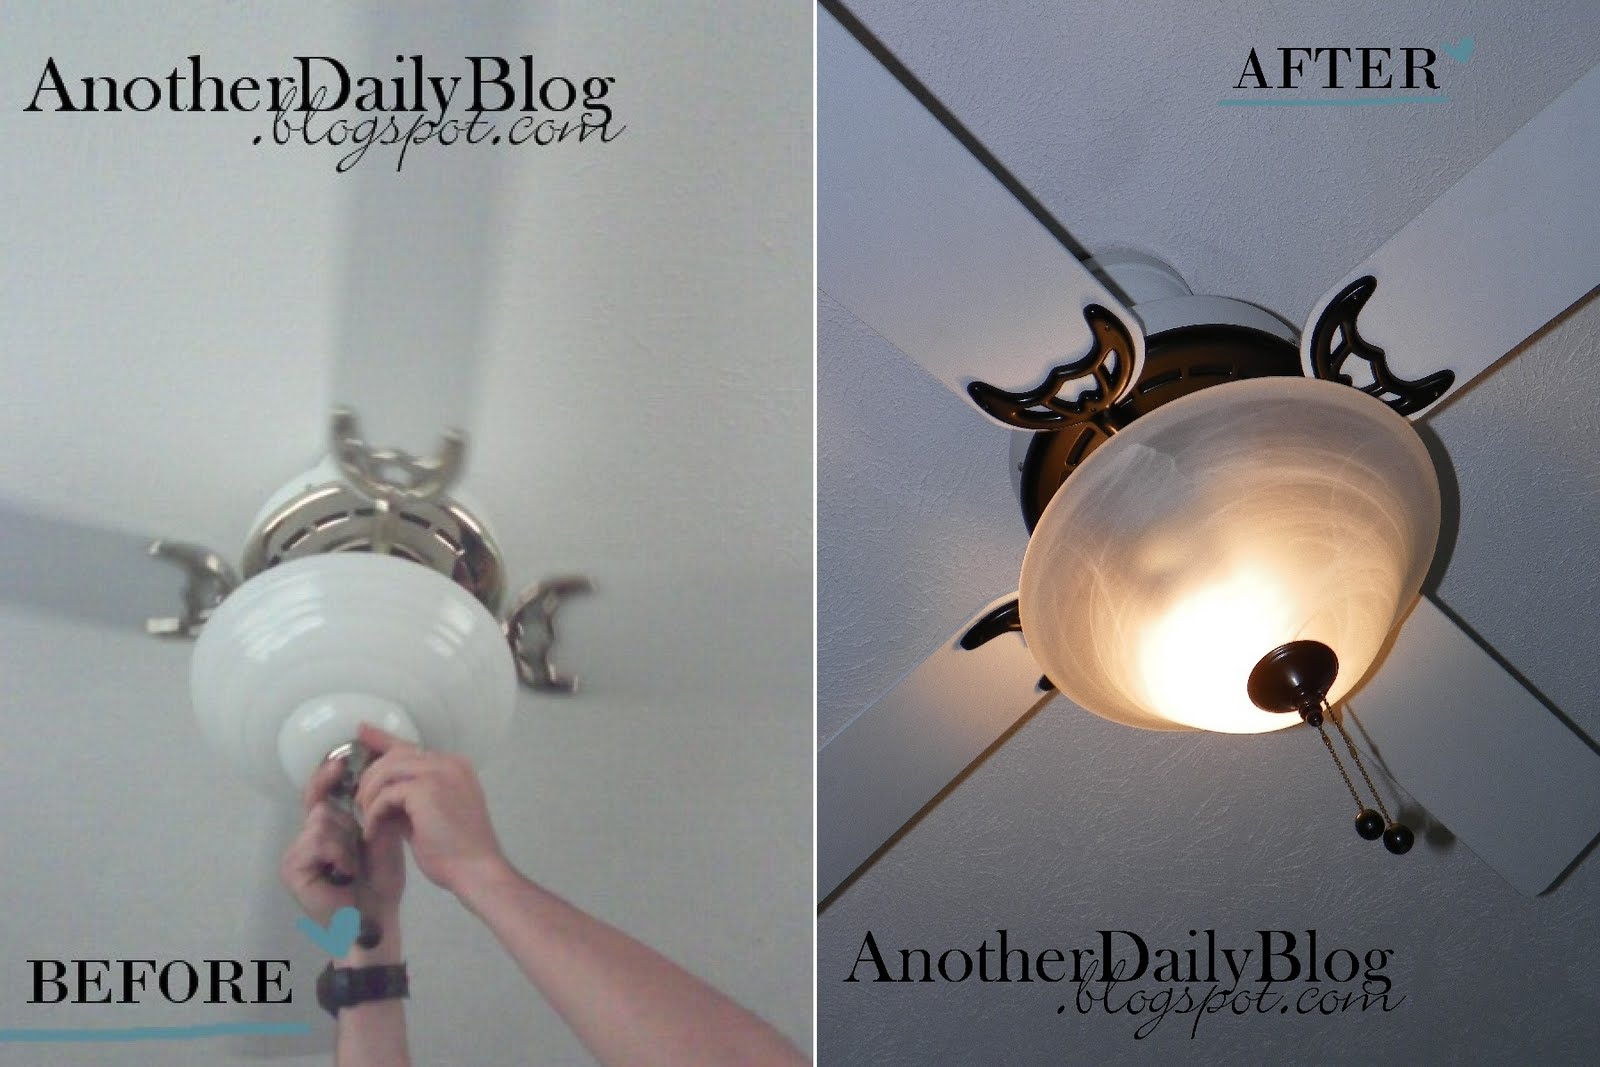 Another daily blog krylon oil rubbed bronze ceiling fan make over sunday may 8 2011 mozeypictures Image collections